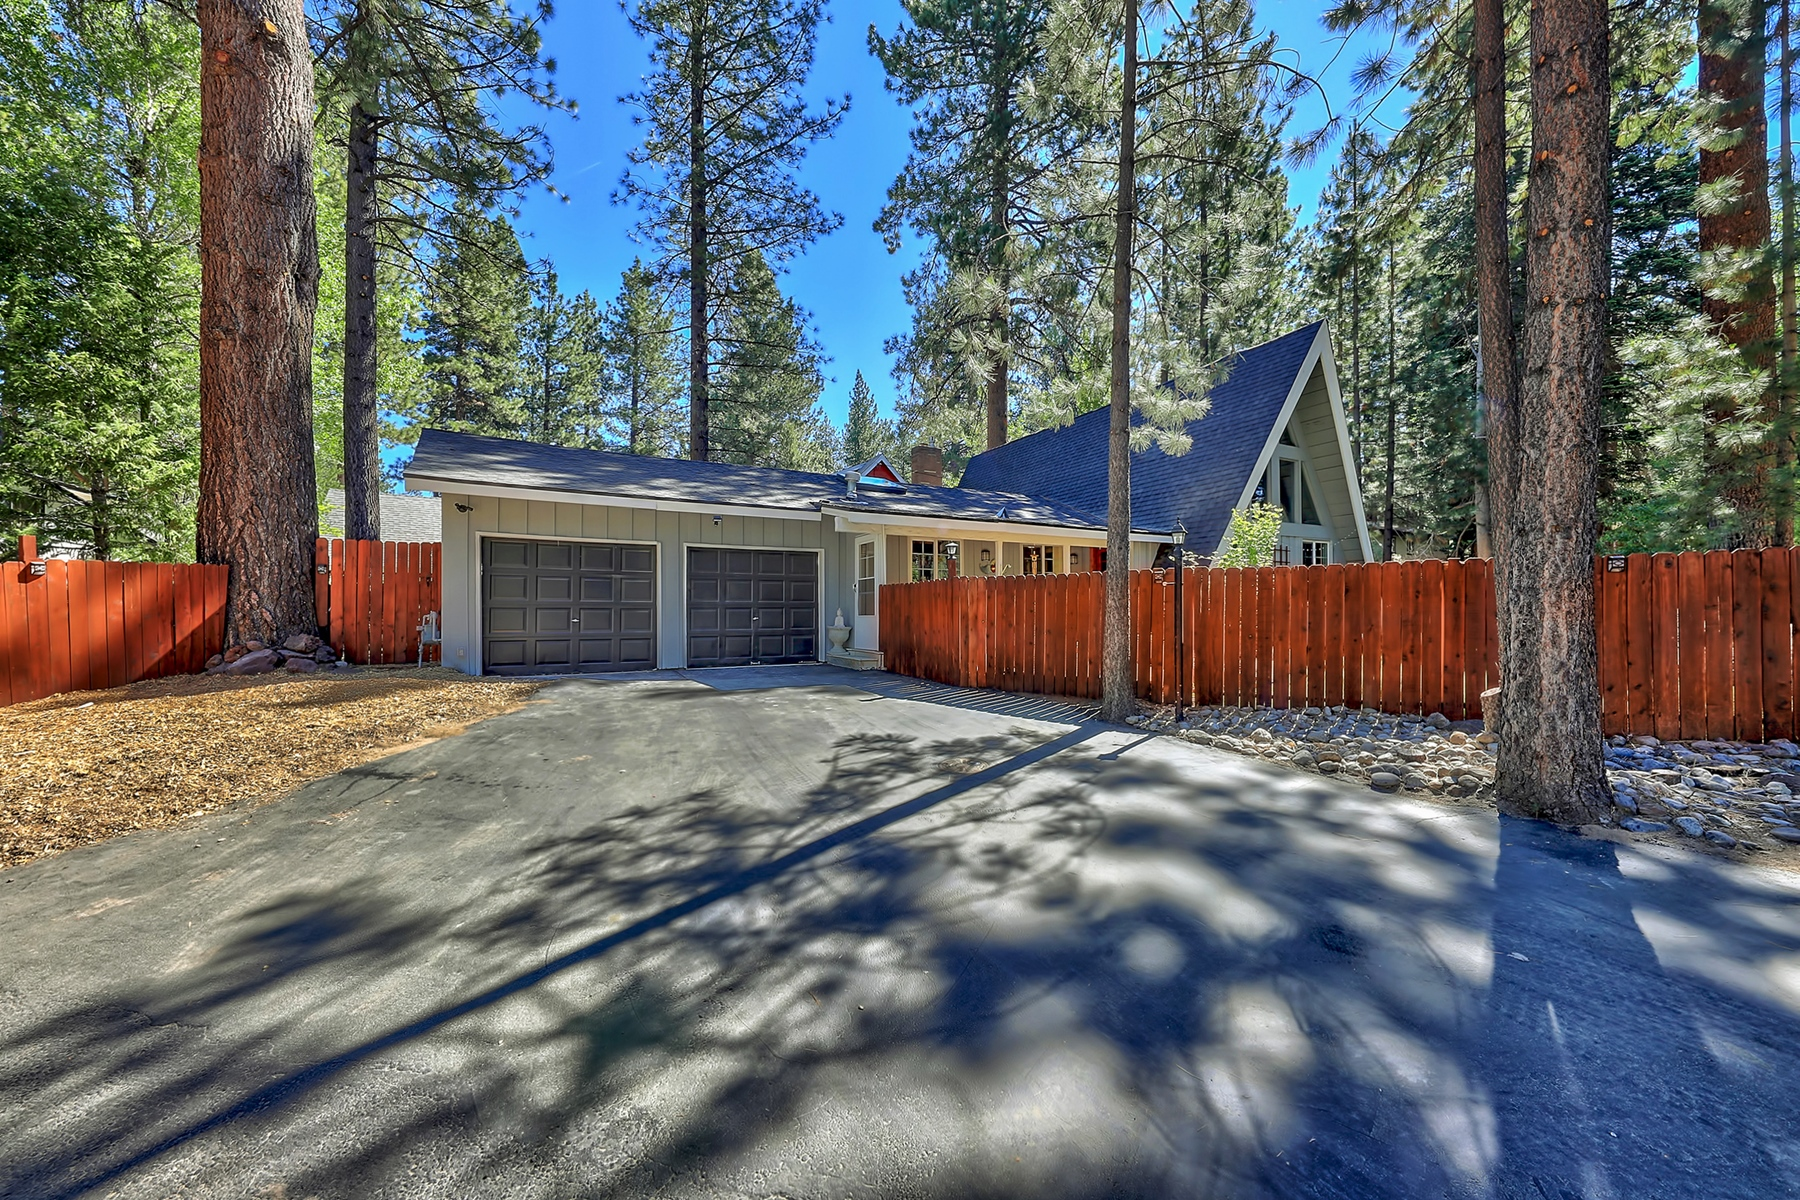 Additional photo for property listing at 731 Tahoe Keys Blvd, South Lake Tahoe, CA 96150 731 Tahoe Keys Blvd South Lake Tahoe, California 96150 United States